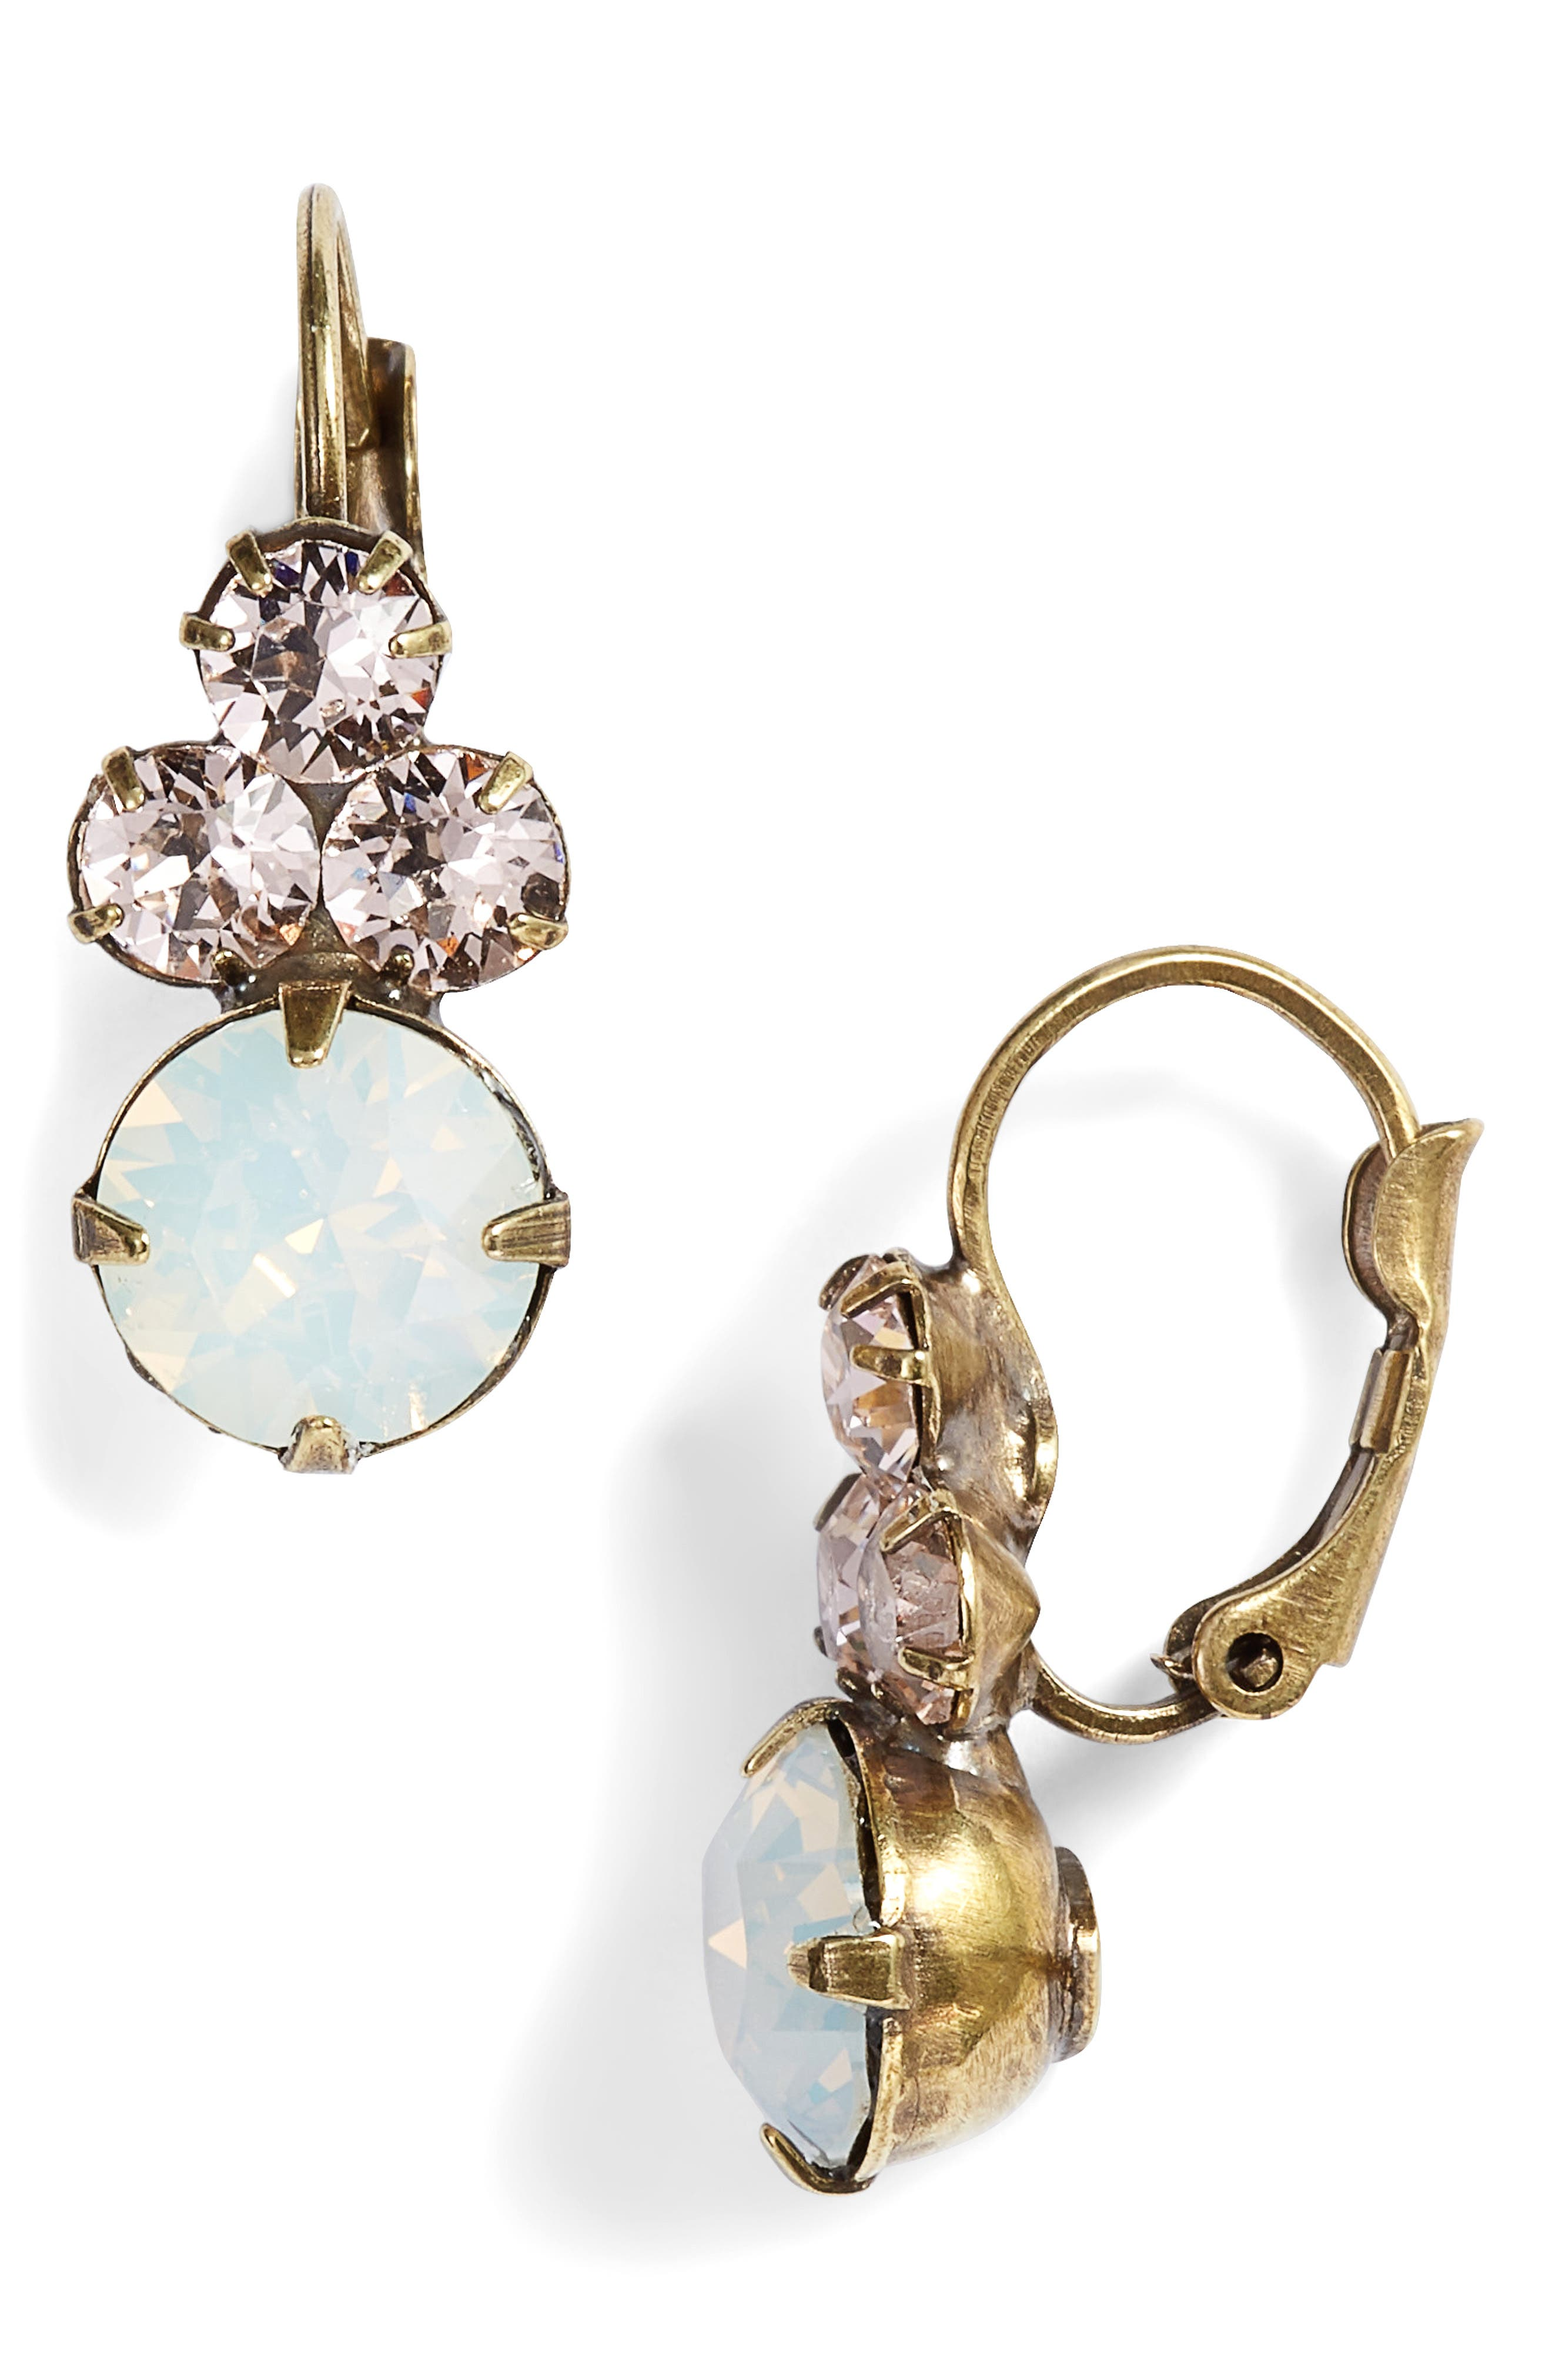 Wisteria Crystal Drop Earrings,                         Main,                         color, Pink/ White